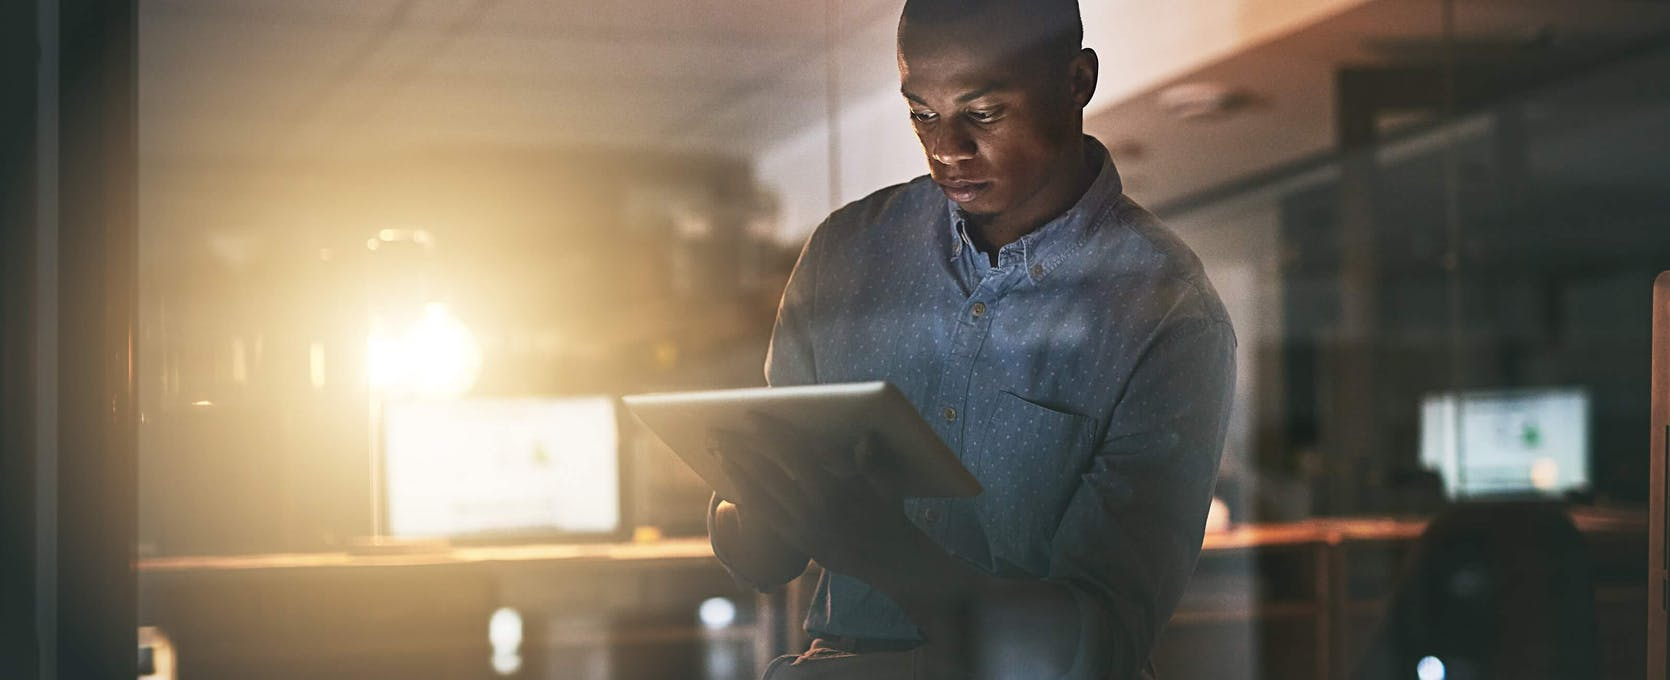 Small business owner accesses PPP funding portal on his computer